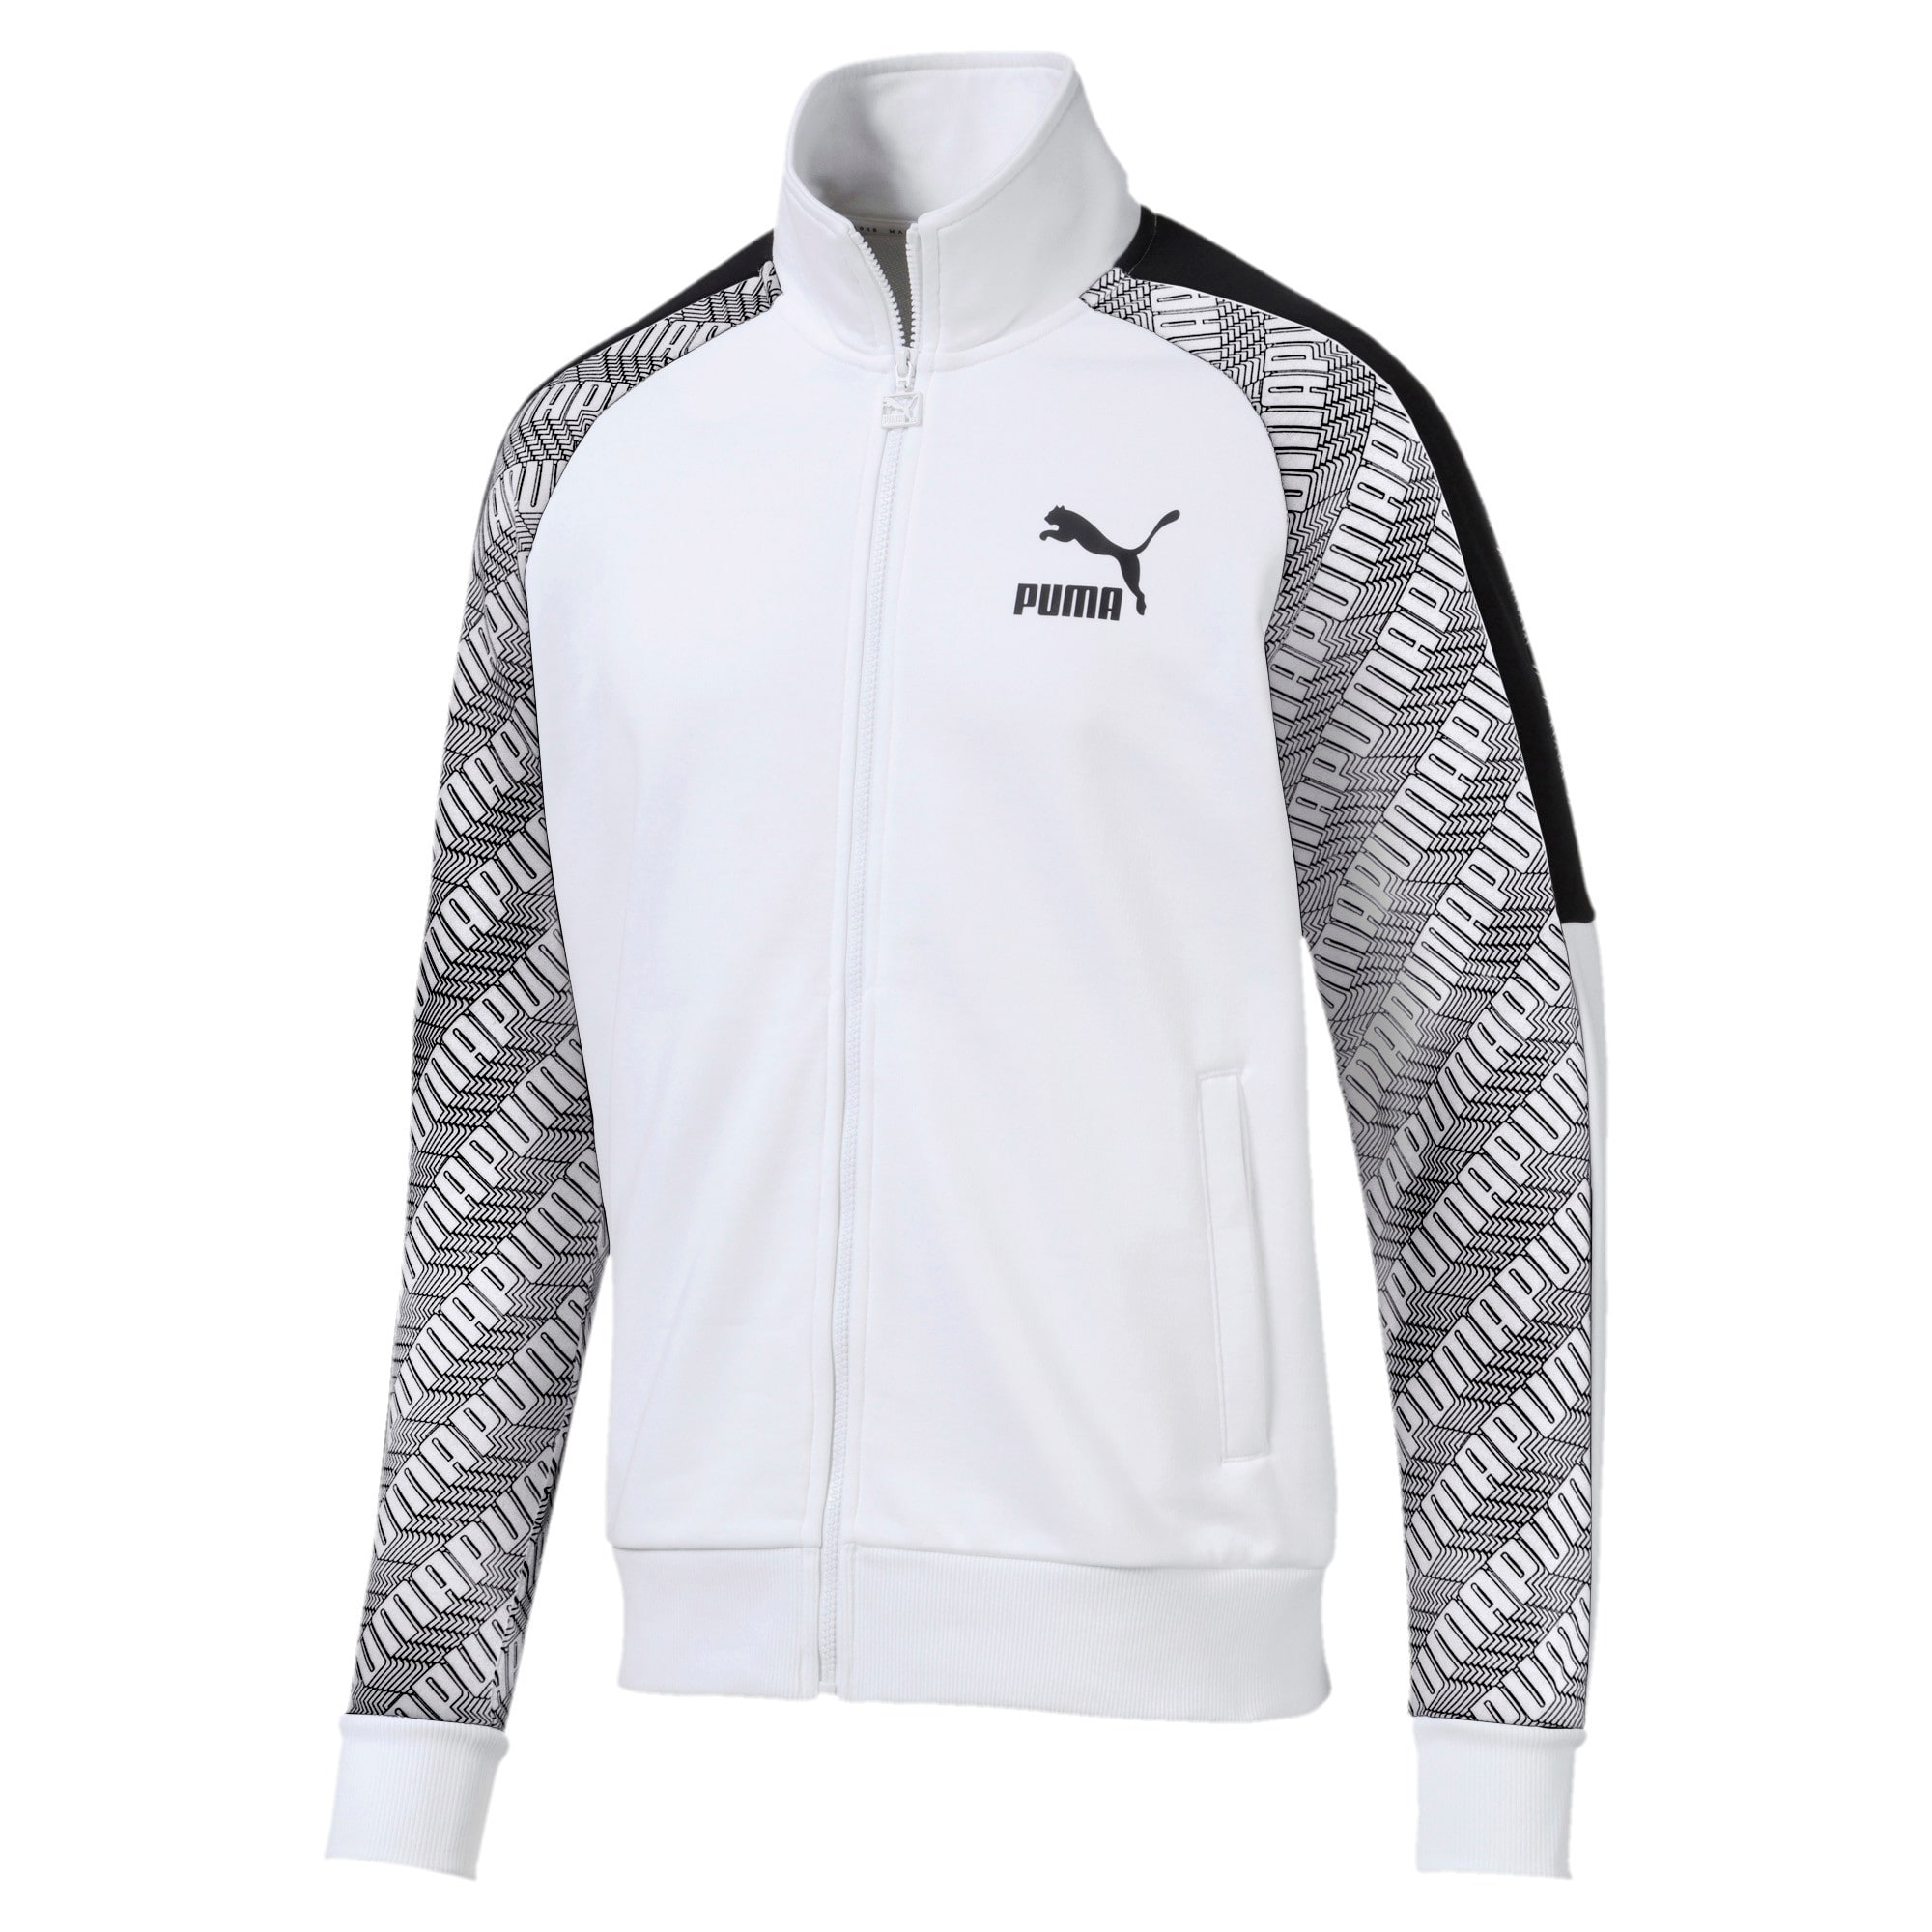 Thumbnail 1 of T7 All-Over Printed Men's Track Jacket, Puma White-Repeat logo, medium-IND